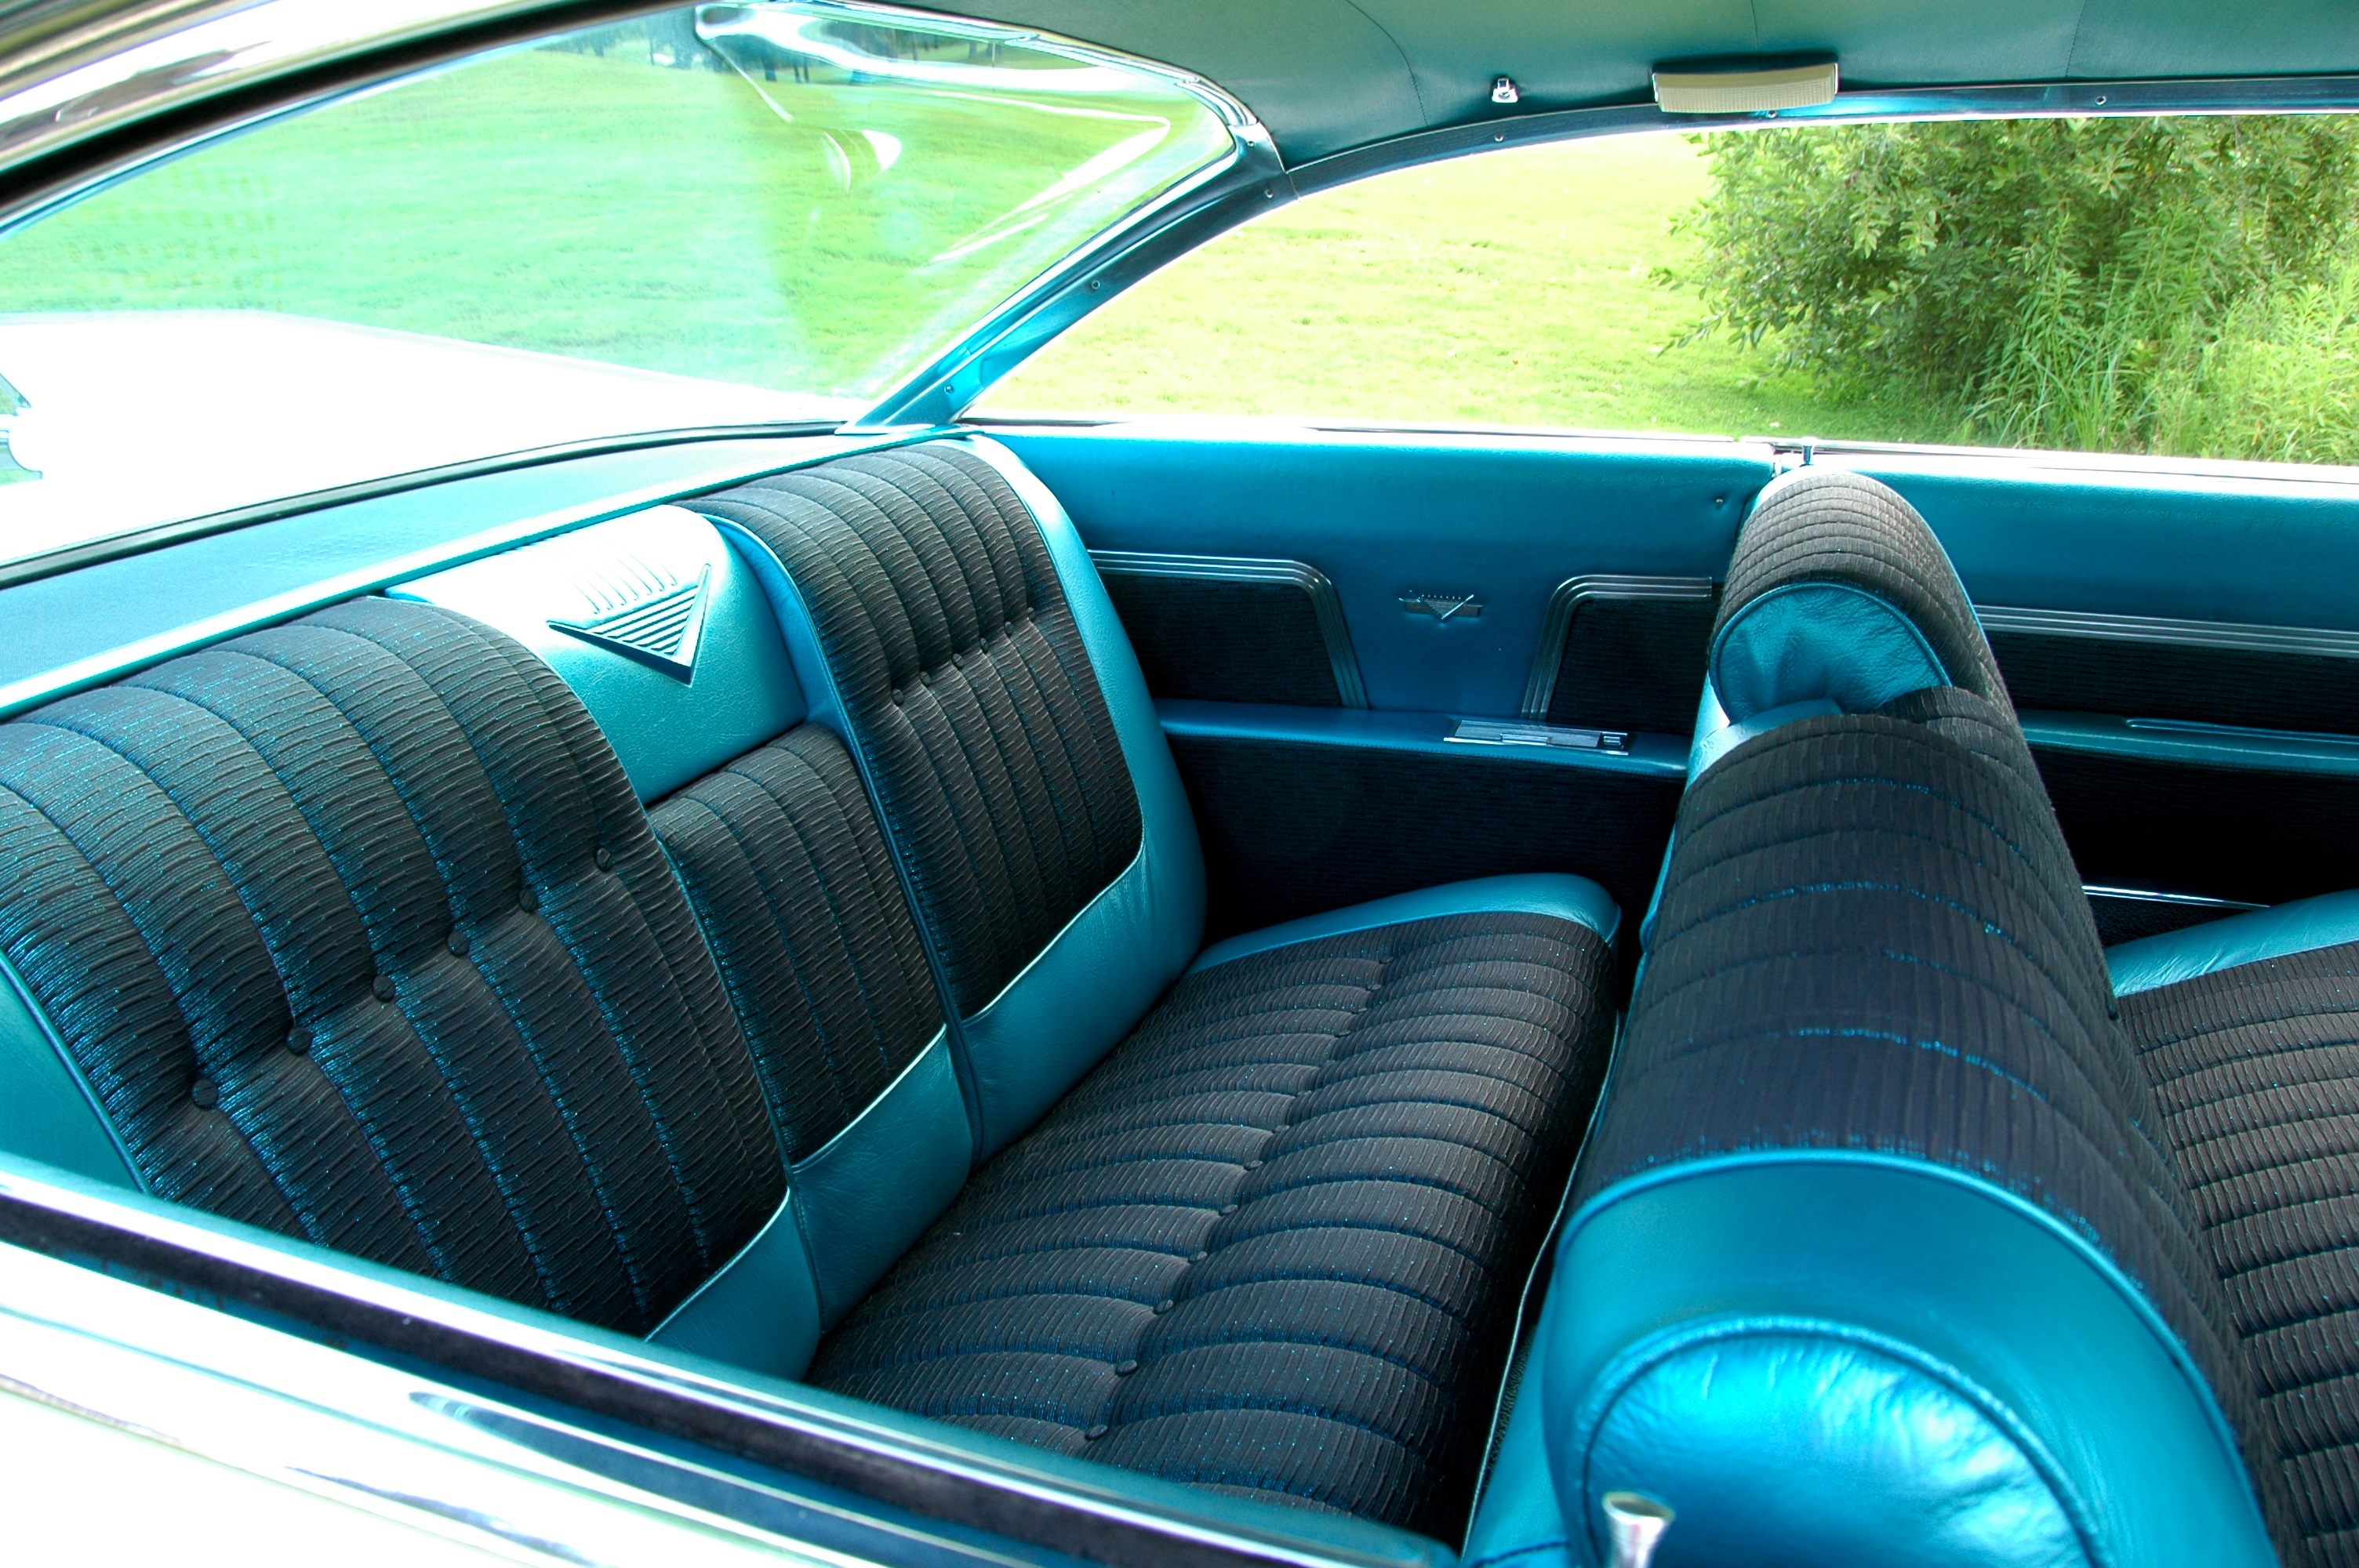 cadillac interior restoration upholstery cpr for your car. Black Bedroom Furniture Sets. Home Design Ideas